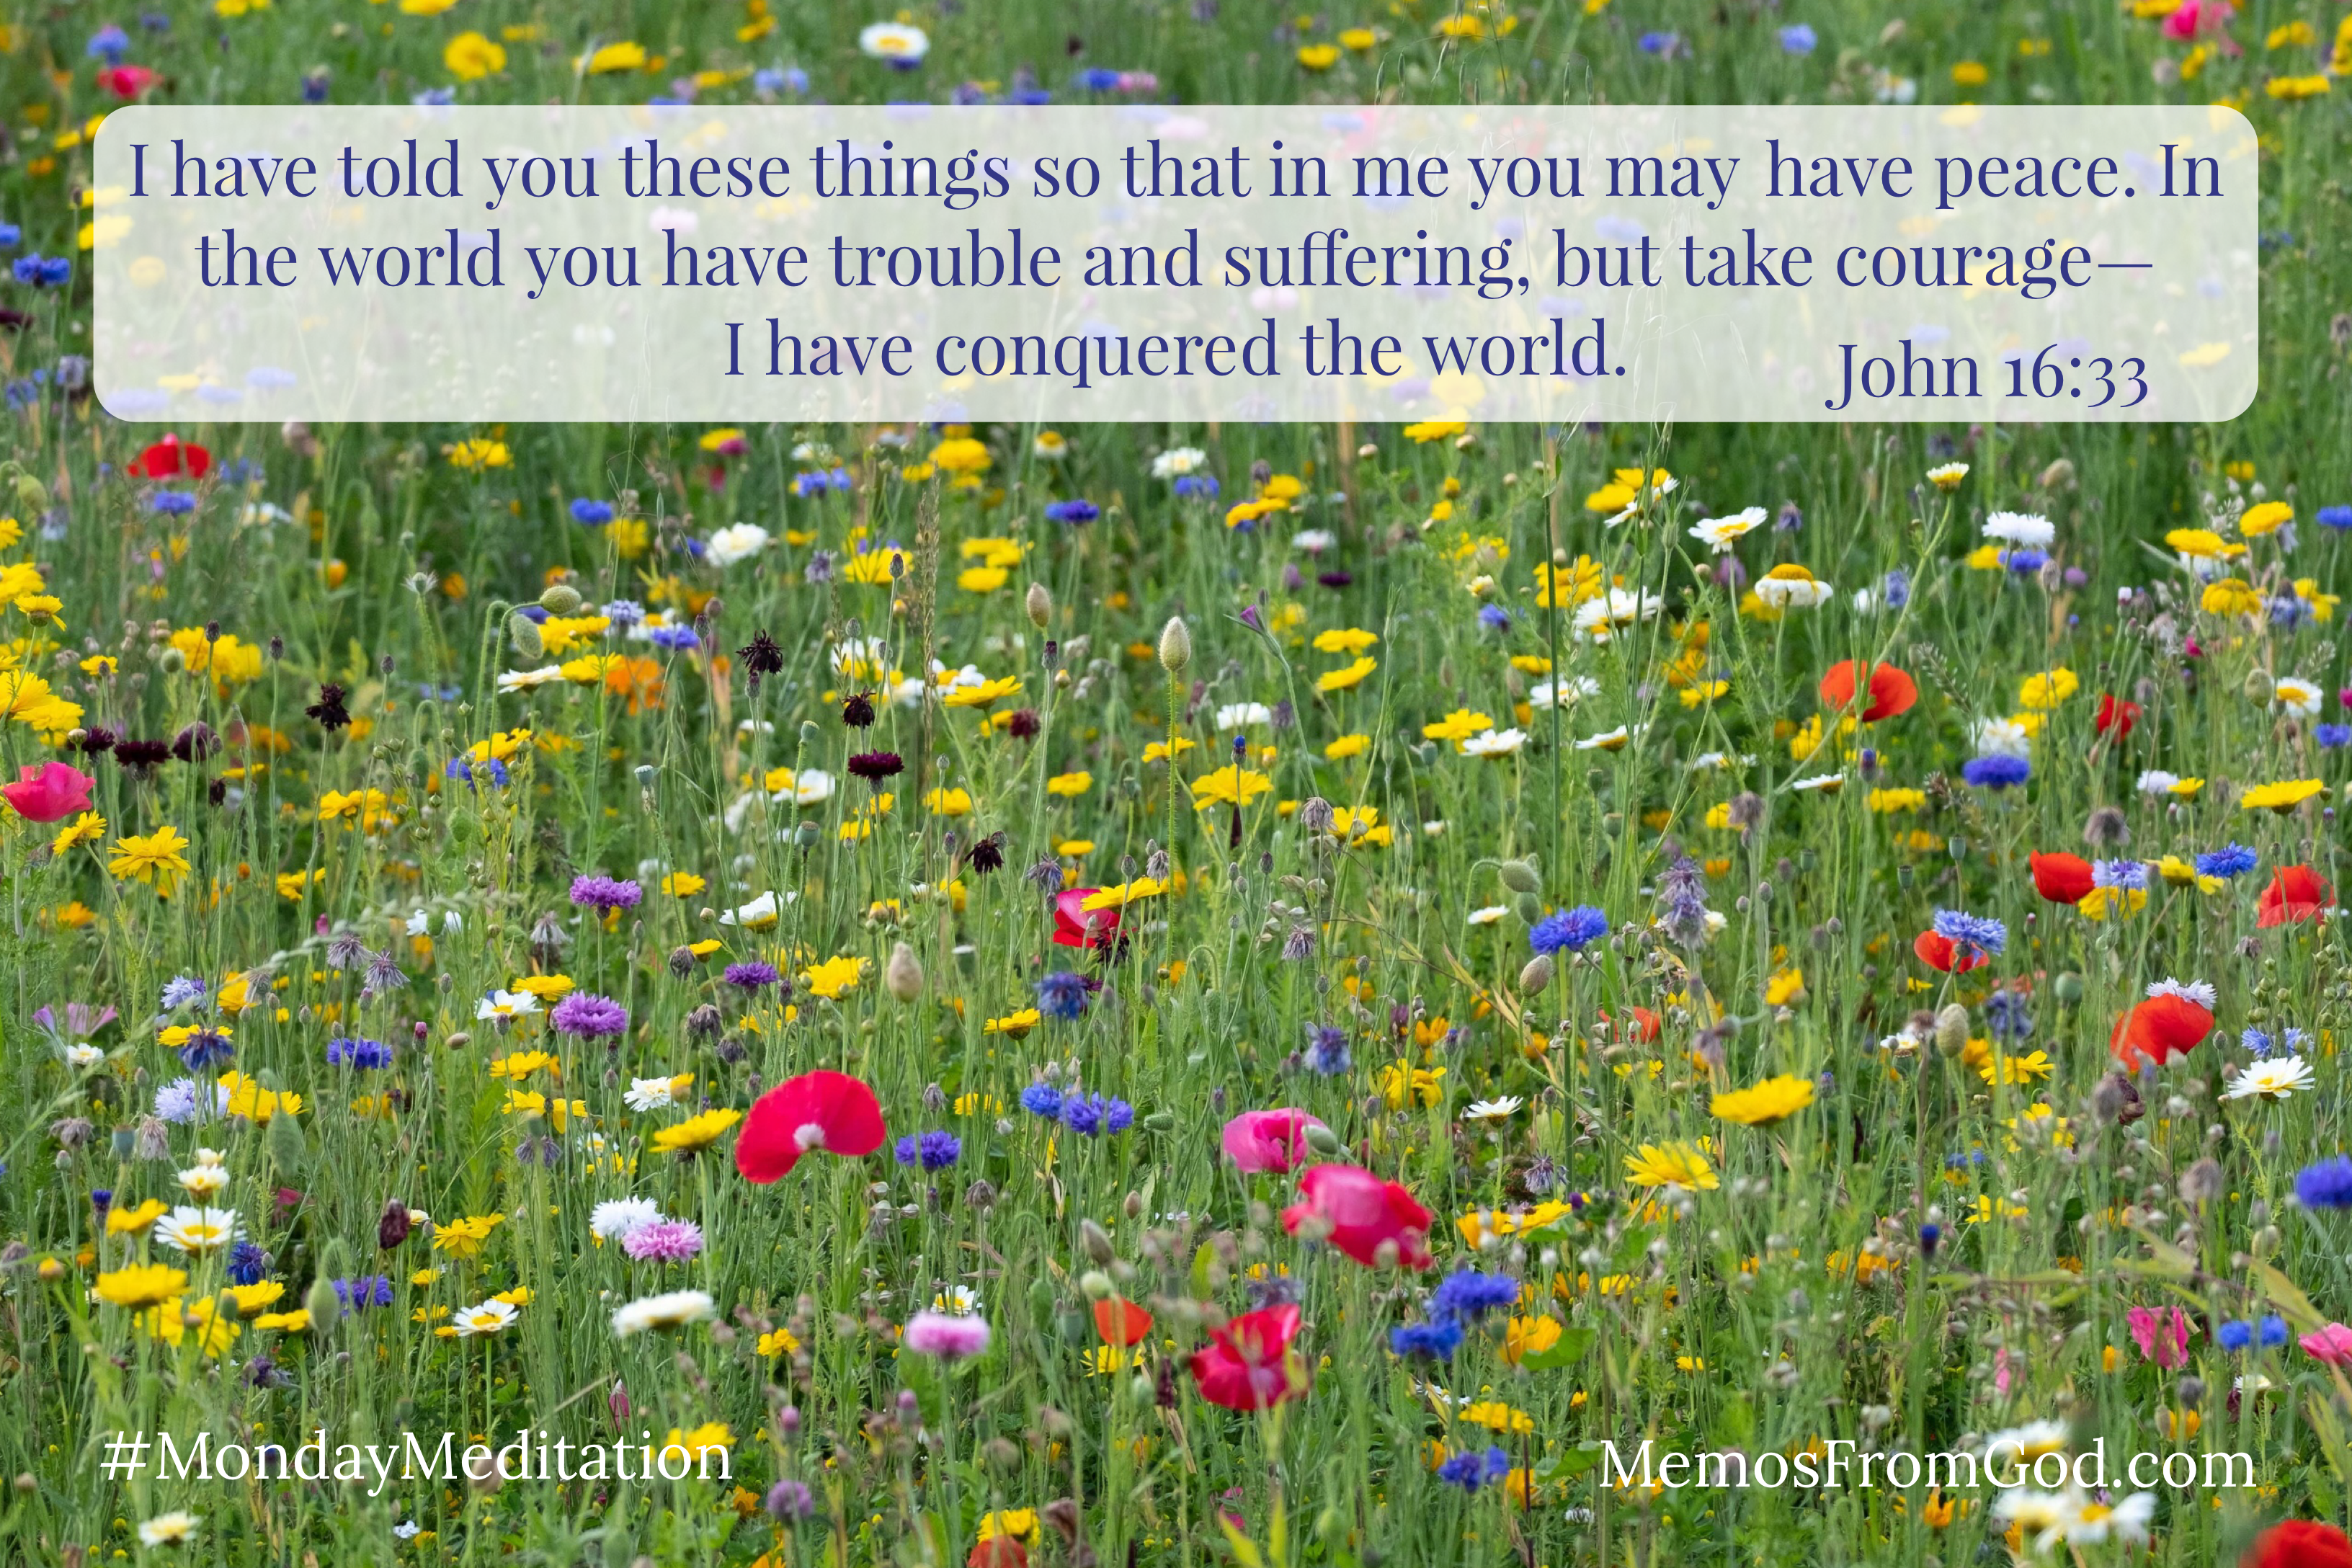 A green field filled with small, multi-coloured wildflowers. Caption: I have told you these things so that in me you may have peace. In the world you have trouble and suffering, but take courage— I have conquered the world. John 16:33